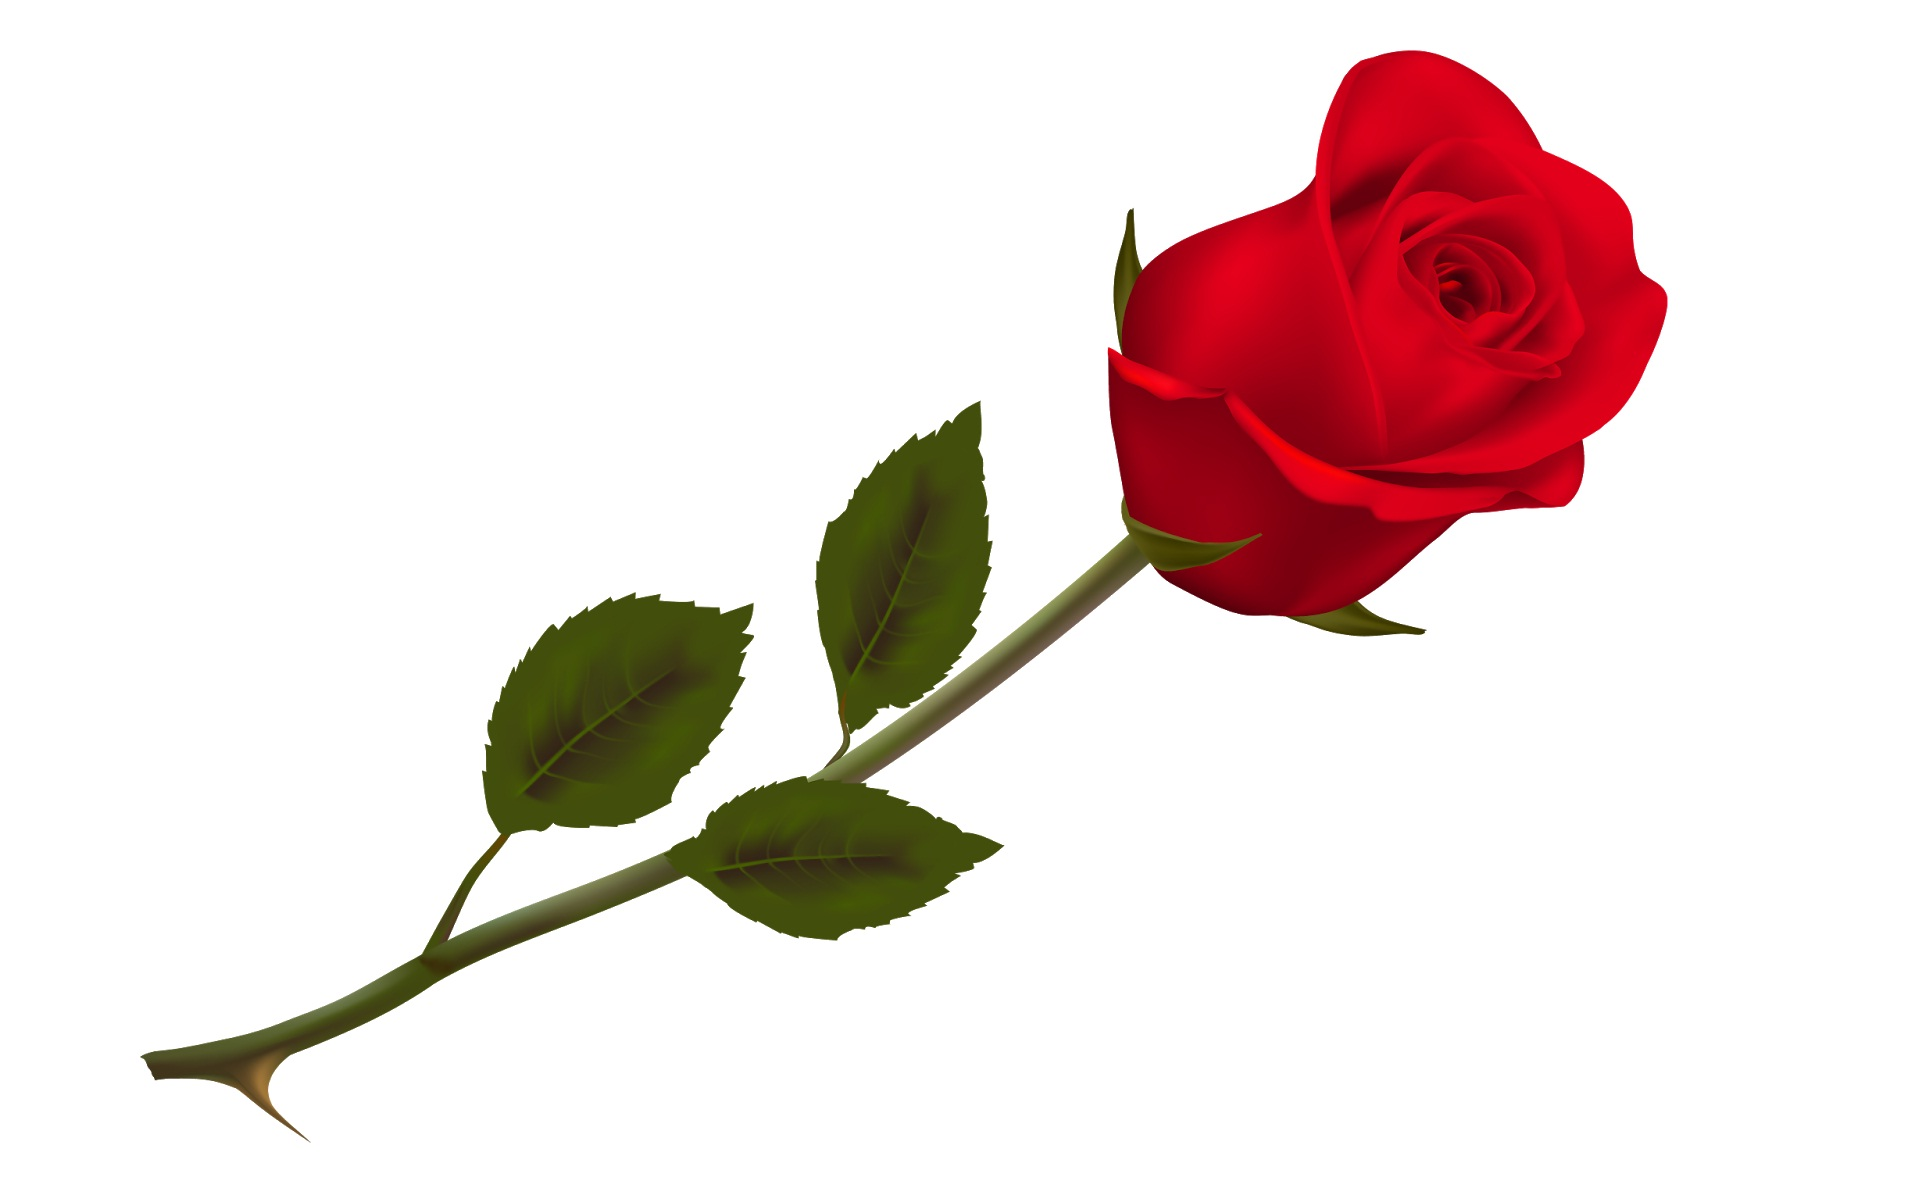 Single-red-rose-for-happy-rose-day-wishes.jpg (1920×1200) | Grunge ...